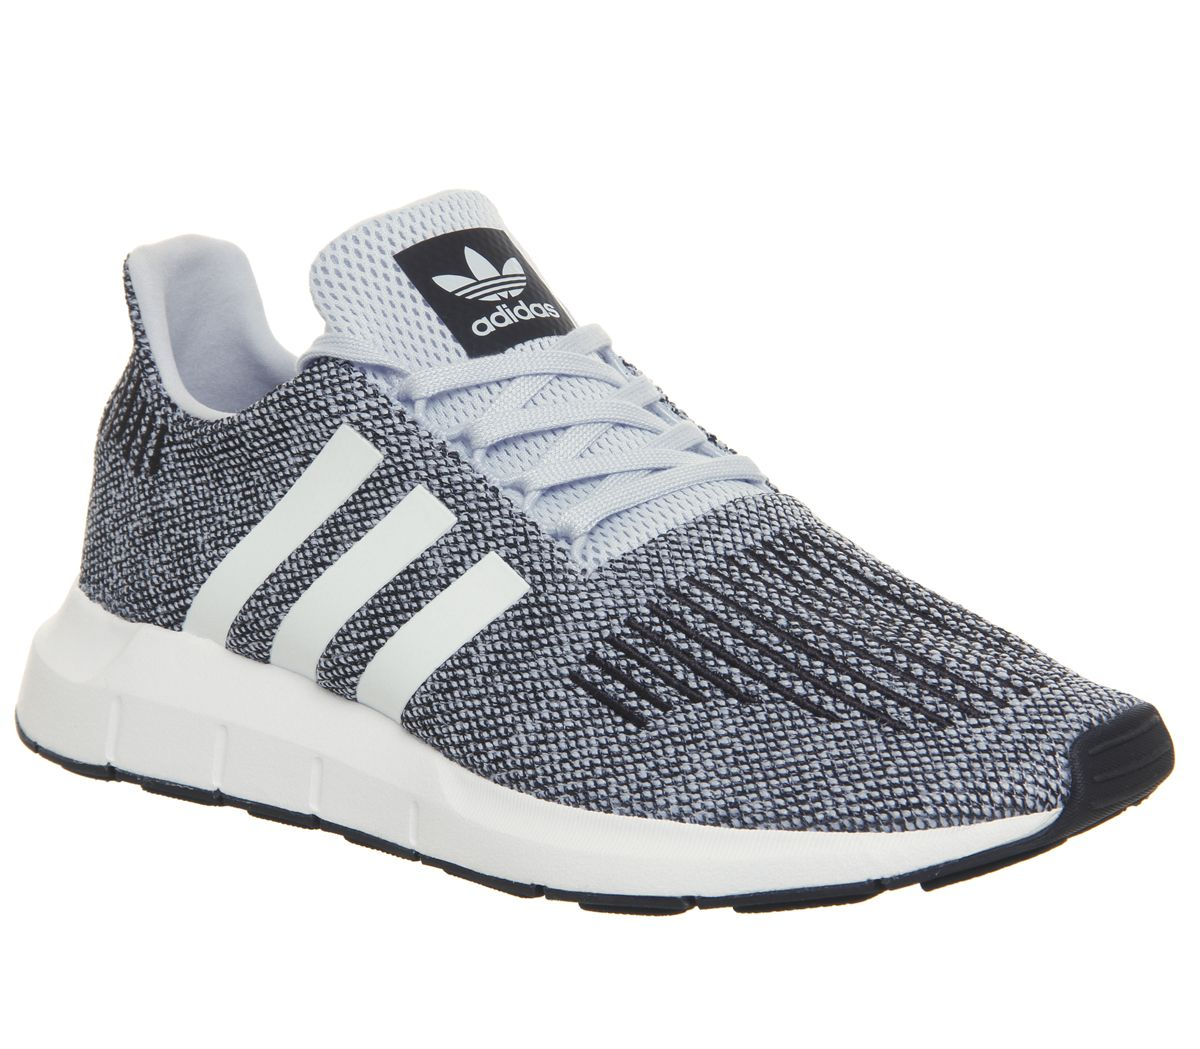 5489e348b175e adidas Swift Run Trainers Aero Blue White - Unisex Sports